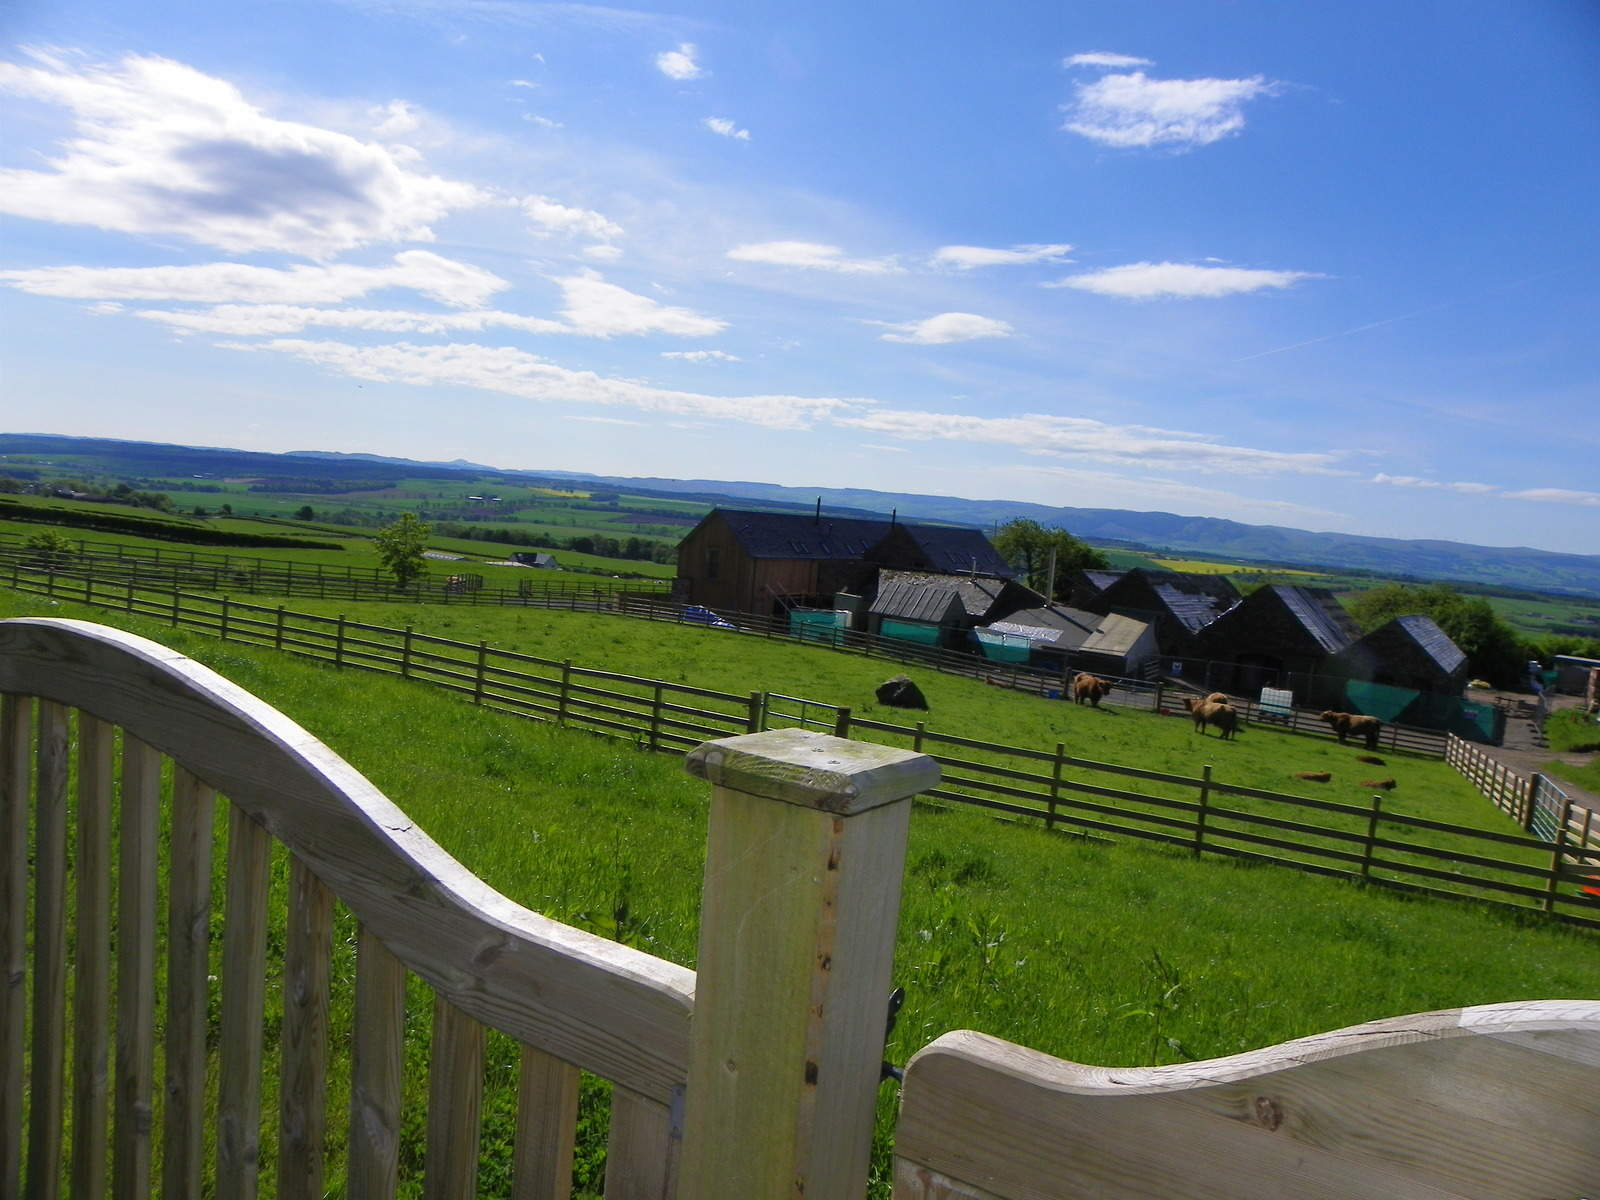 A luxury self-catering holiday at Blairmore Farm in Perth and Kinross, Scotland